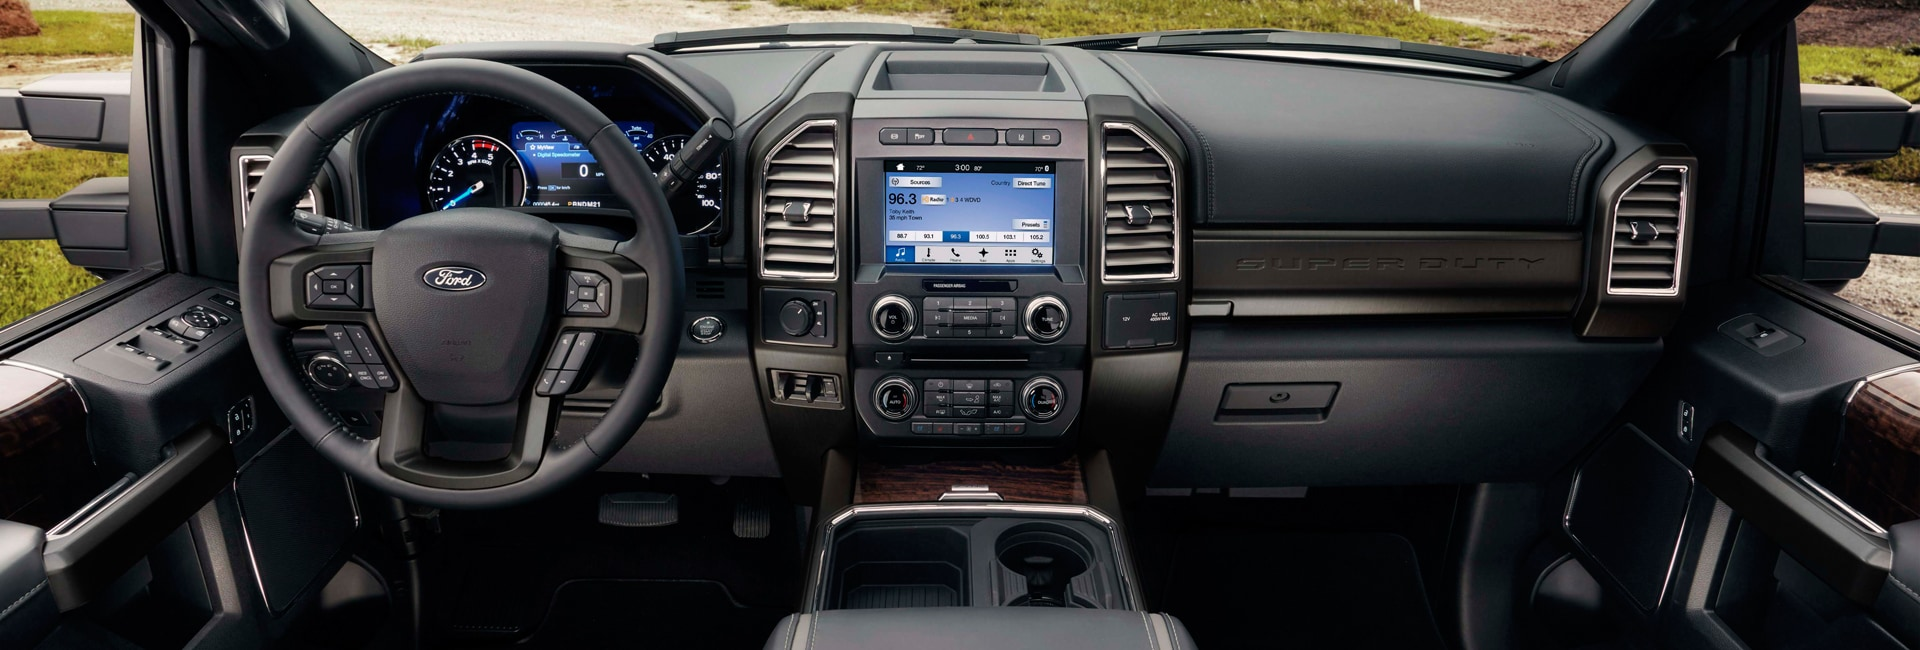 Ford F-350 Interior Vehicle Features